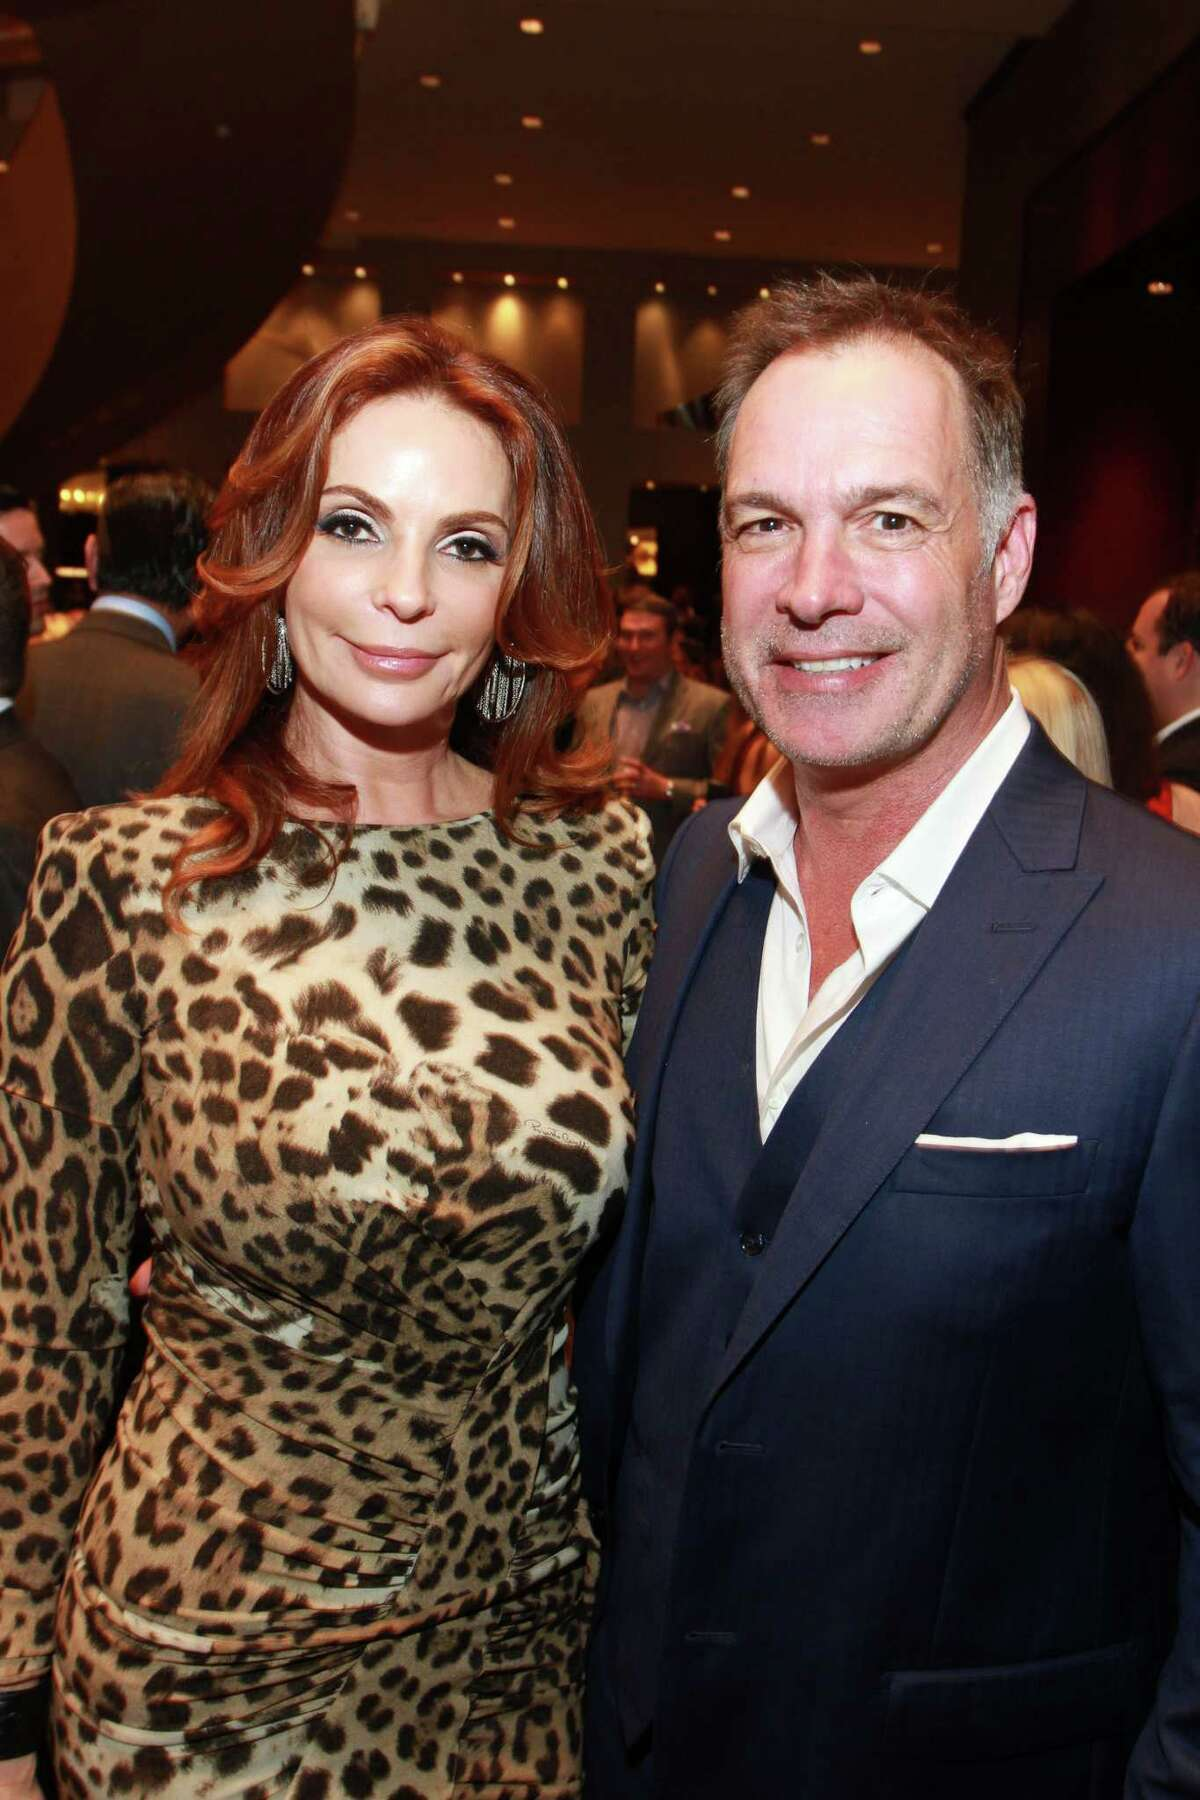 Regina and Mark Duke at Una Notte in Italia, presented by Festari for Men and benefiting Bo's Place. (For the Chronicle/Gary Fountain, November 6, 2015)